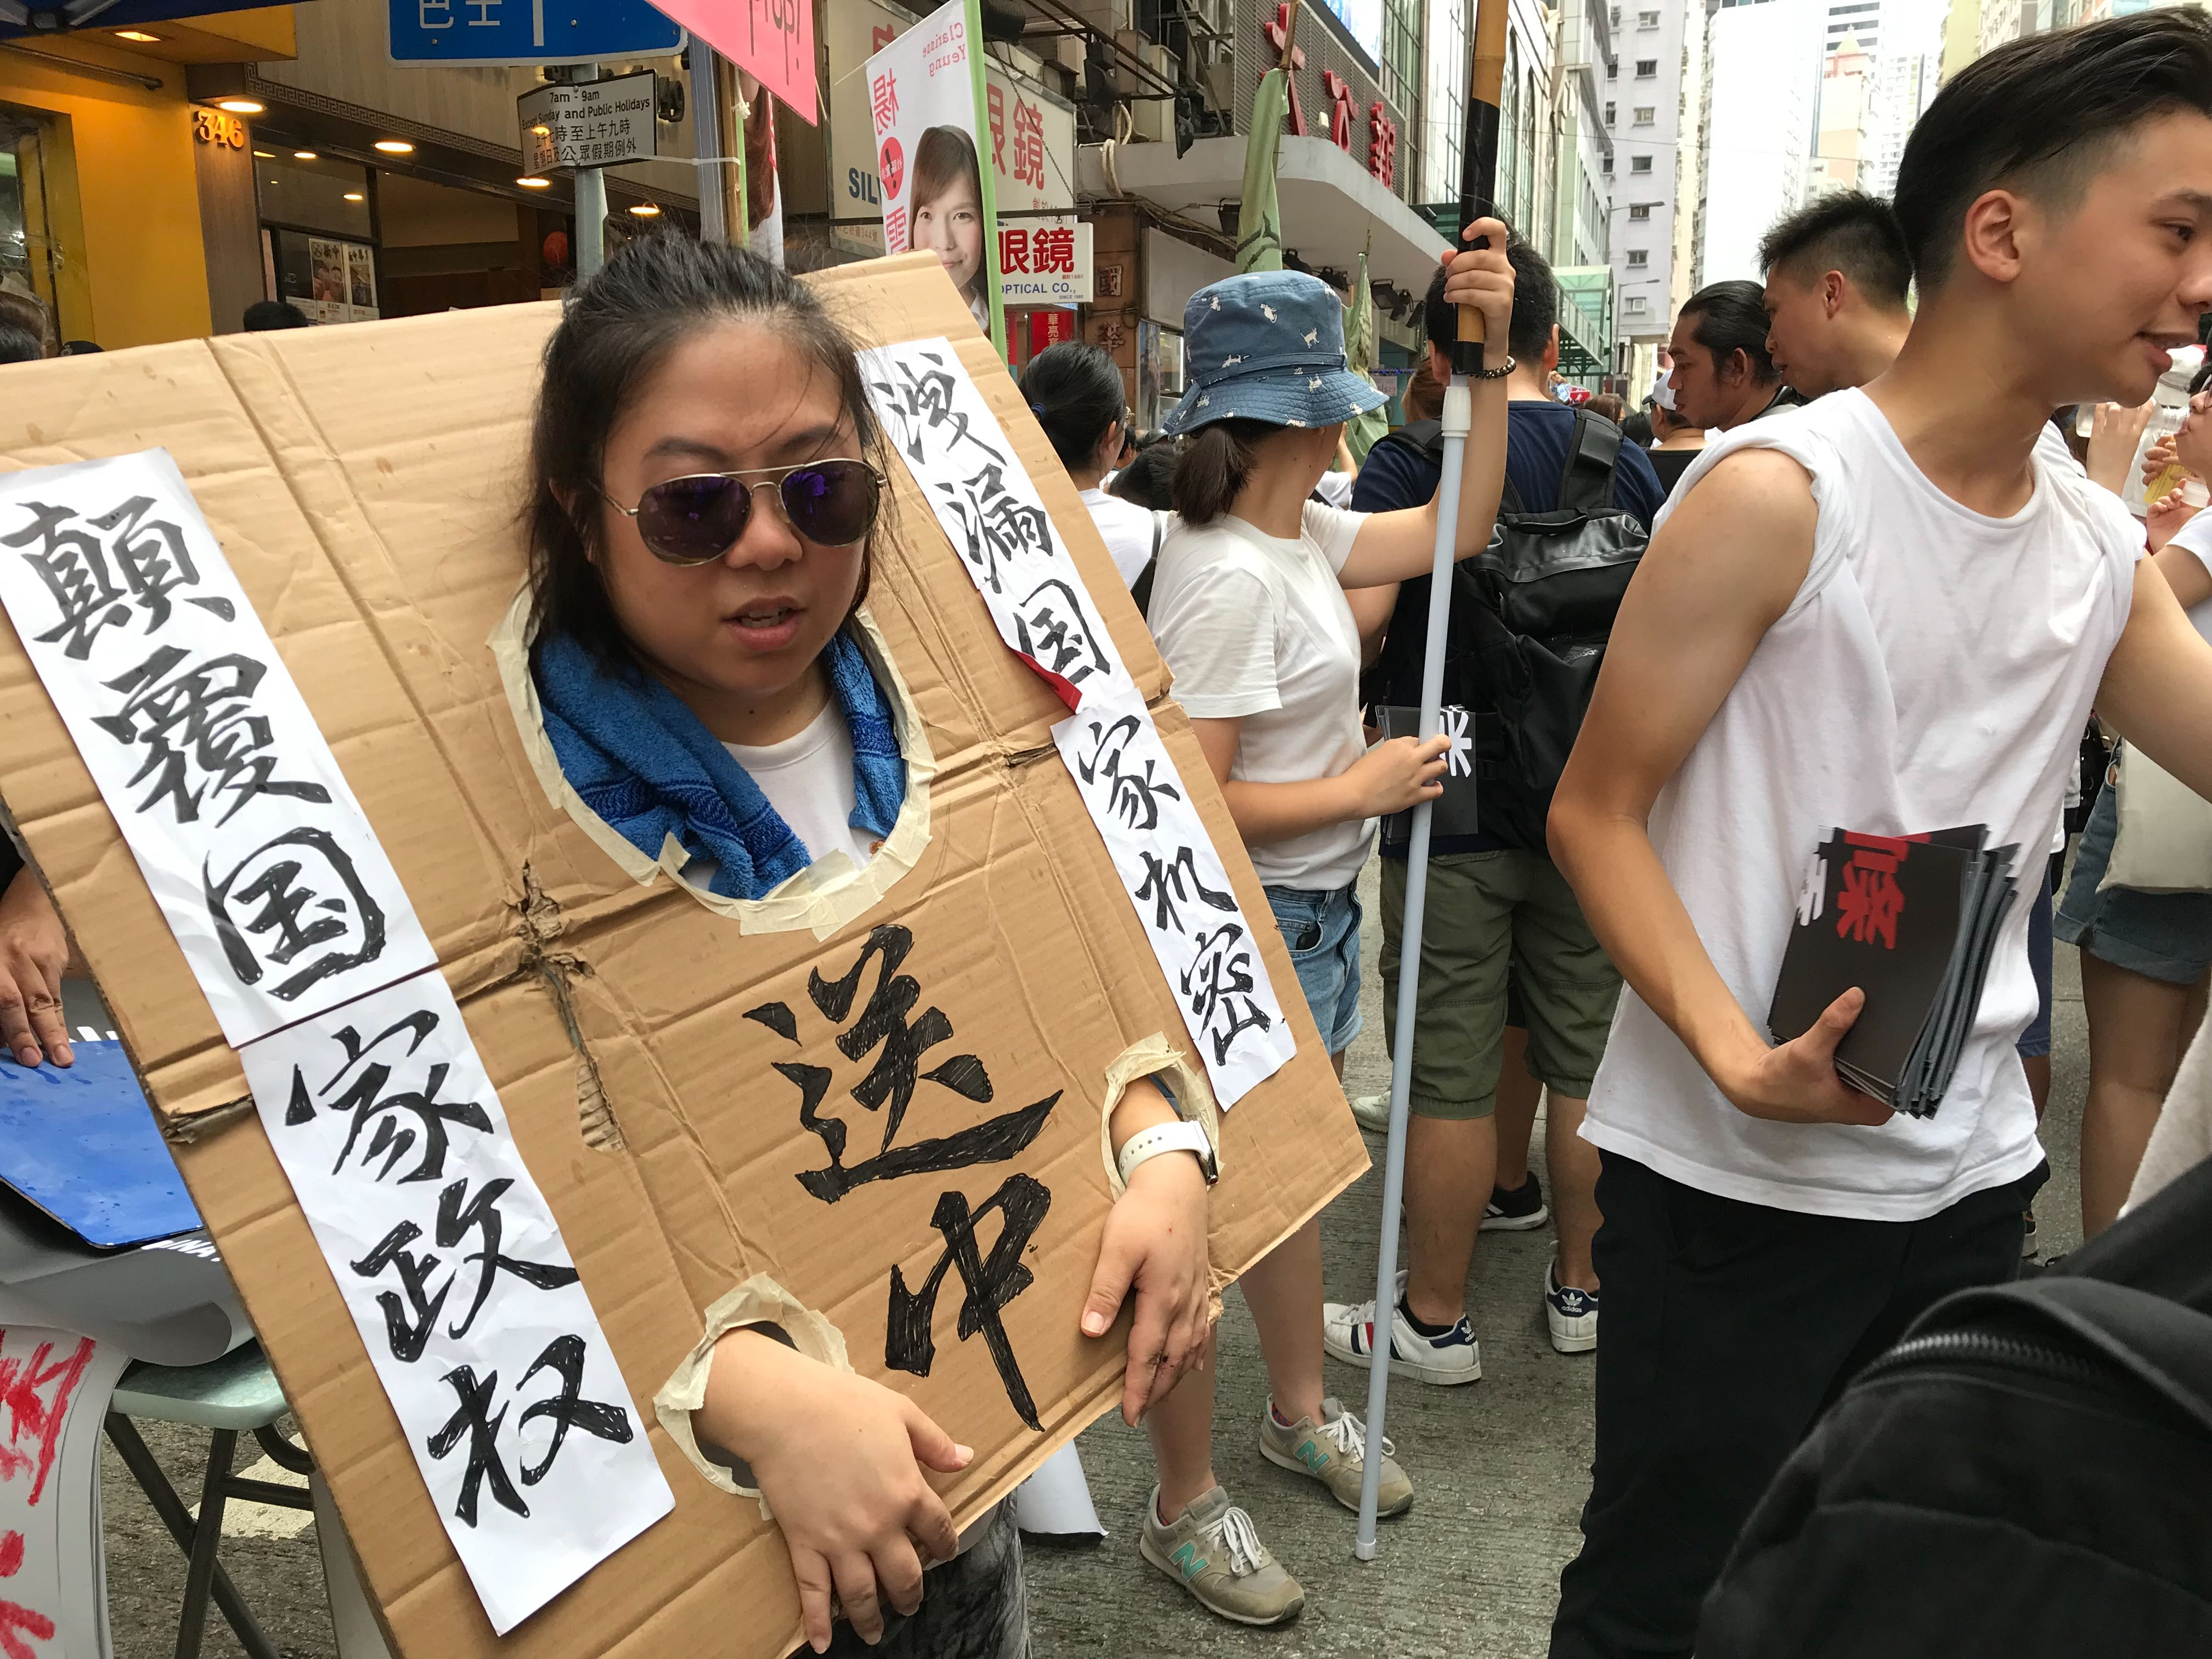 Hong Kong marches against allowing extradition to mainland China